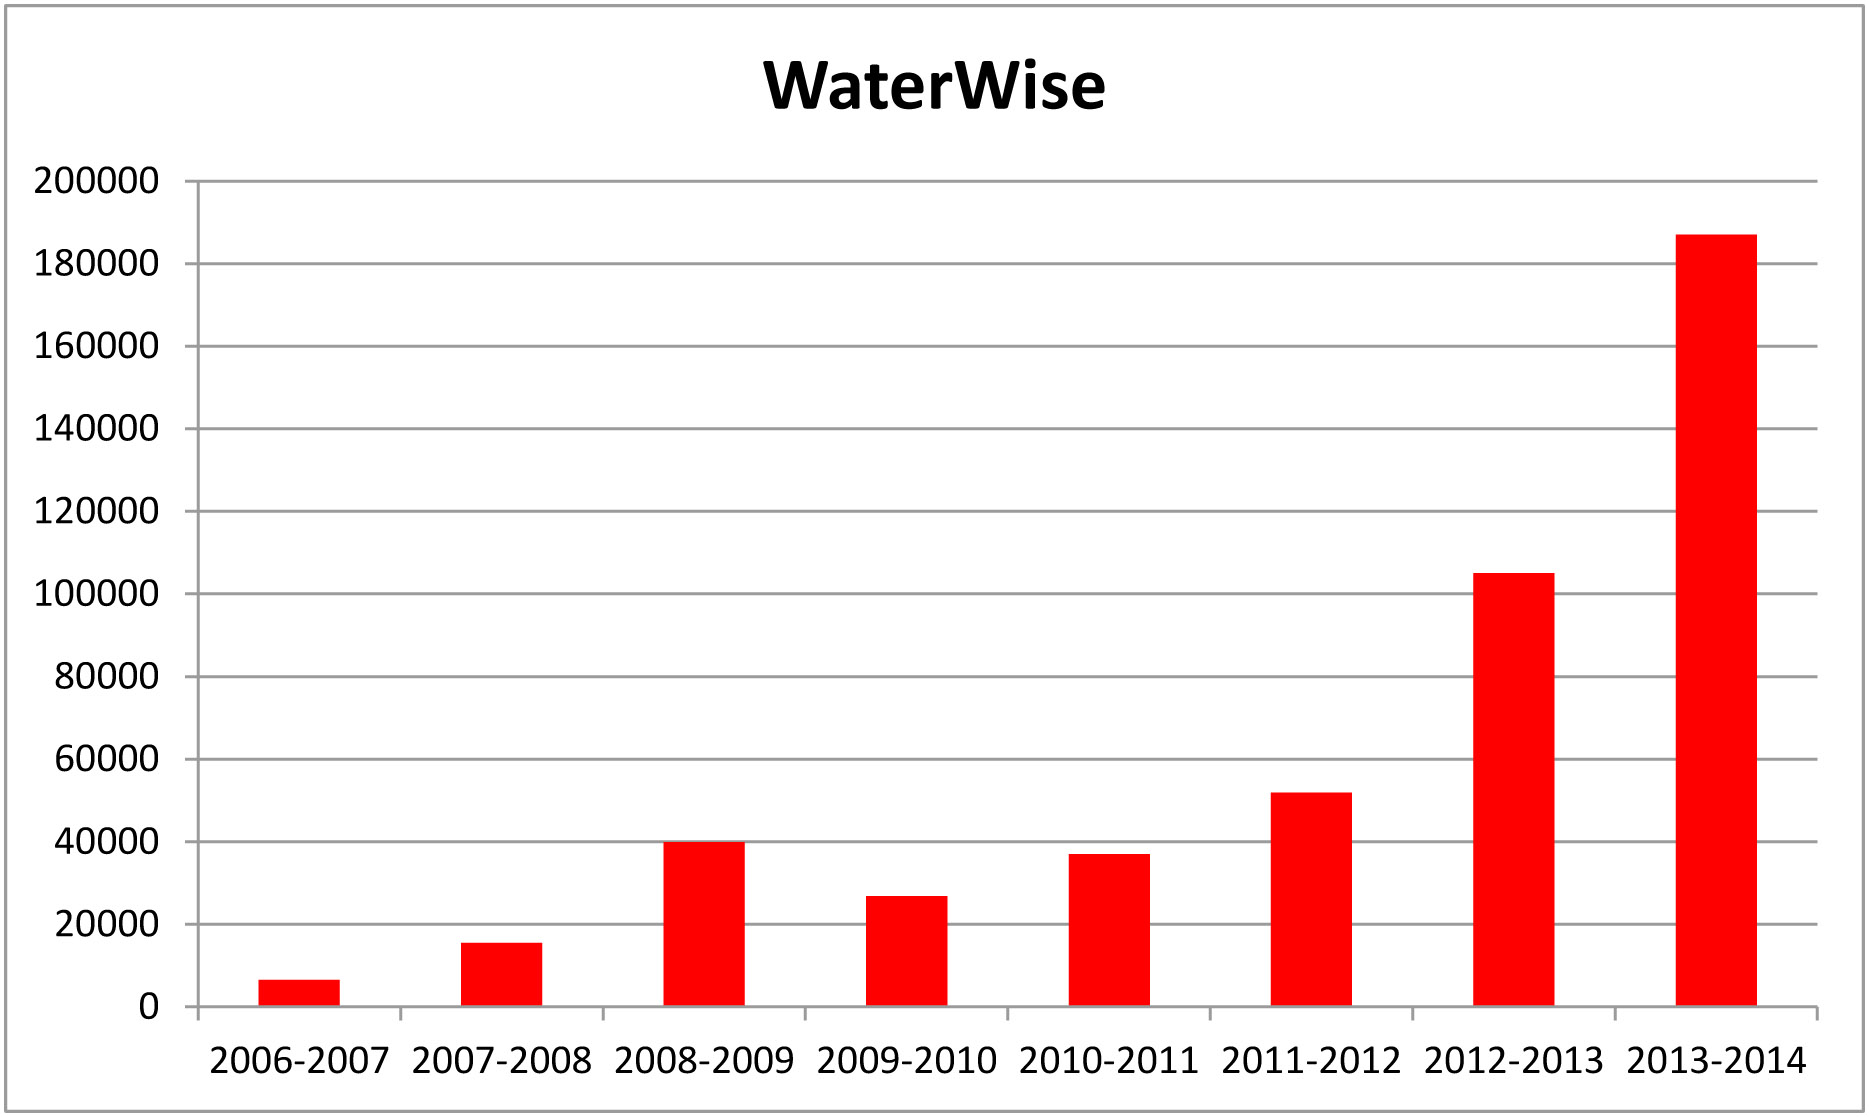 WaterWise stats to end march 2014